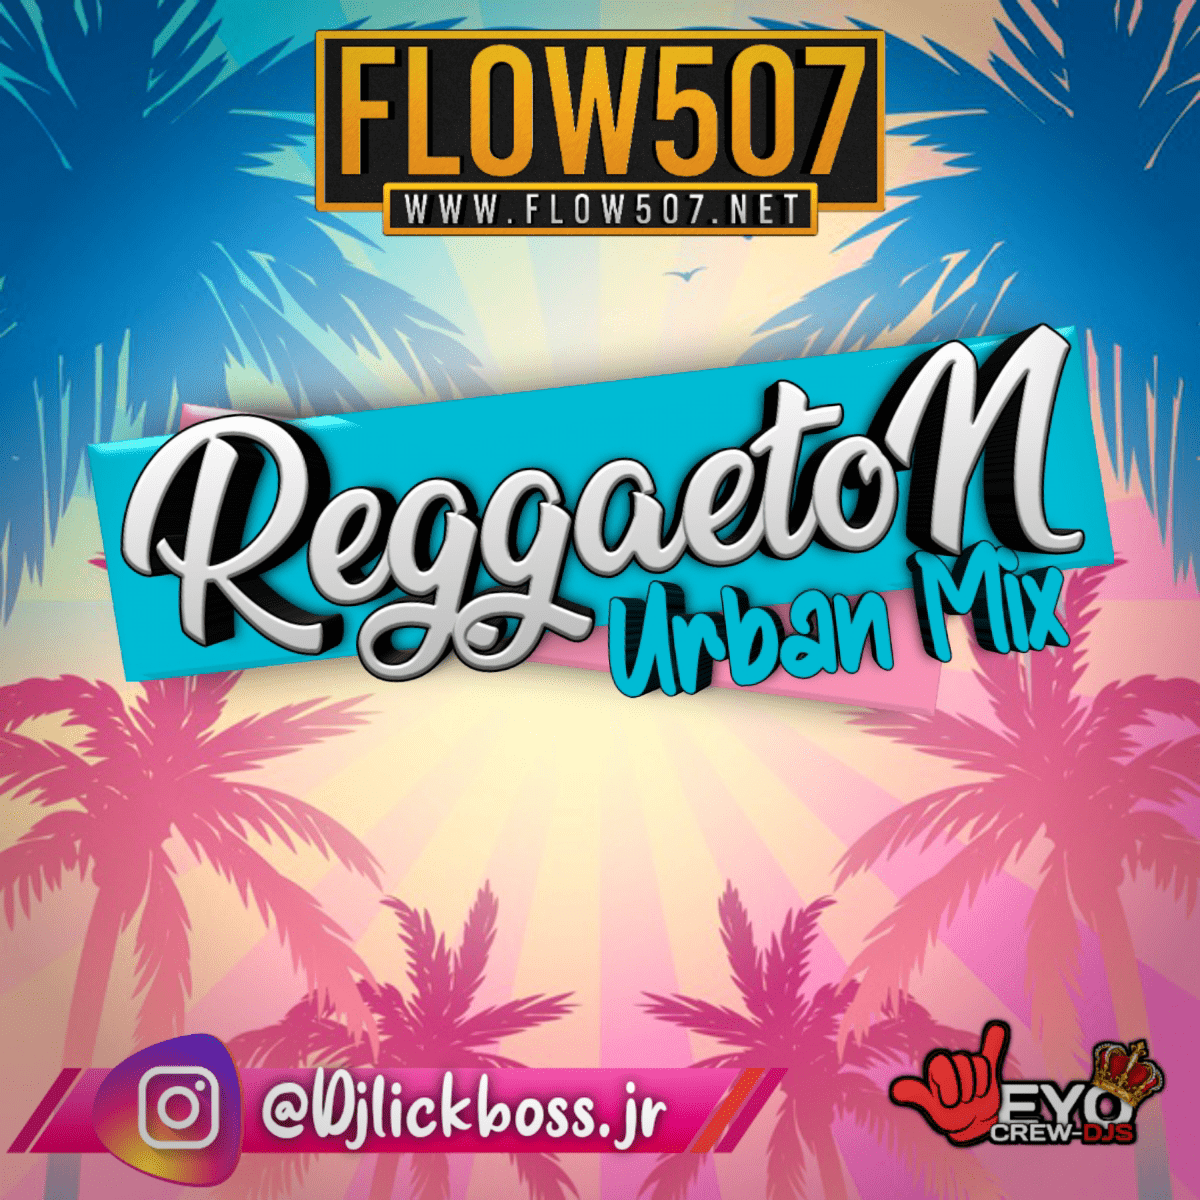 @DJLICKBOSS.JR - REGGAETON URBAN MIX